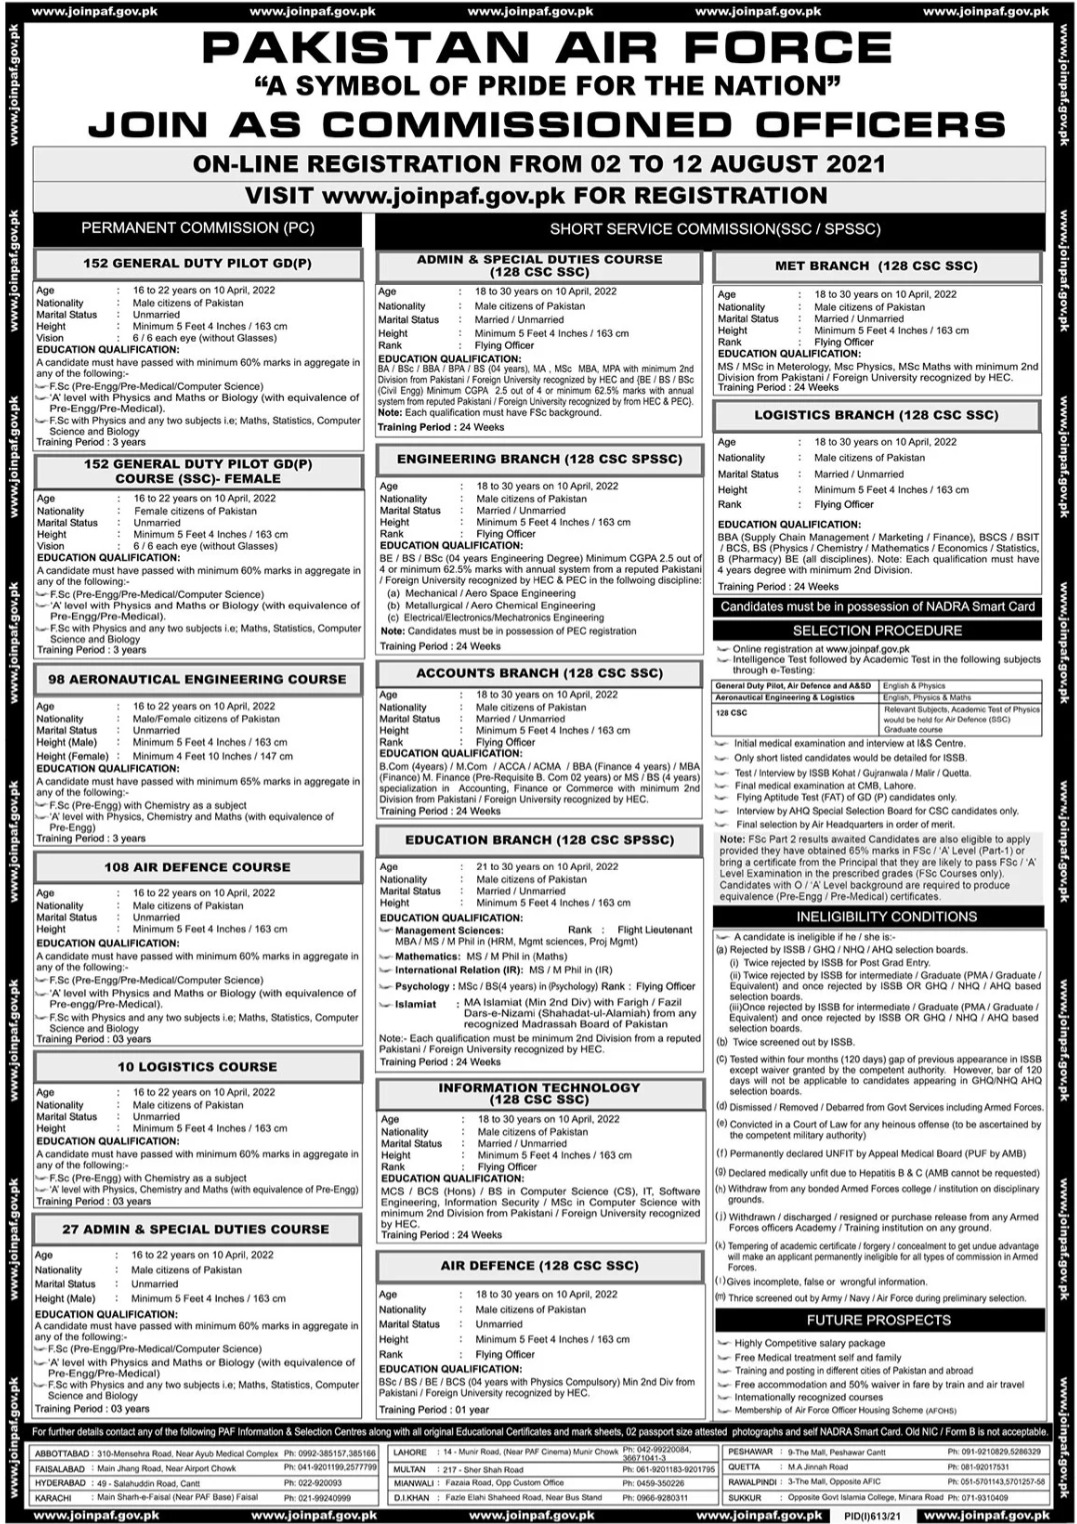 Psychologist jobs in Pakistan Air Force August 2021